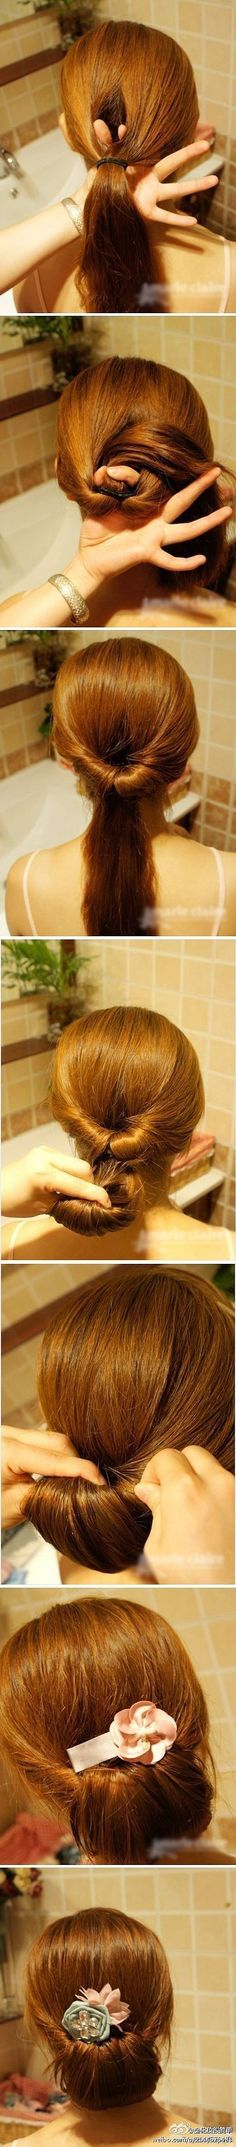 An Updated Chignon - Lazy Hair Day Up Hairstyles, Pretty Hairstyles, Simple Elegant Hairstyles, Easy Wedding Guest Hairstyles, Hairstyle Wedding, Creative Hairstyles, Diy Hair For Wedding Guest, Hairstyles With Fascinators, Hair Updos For Weddings Guest